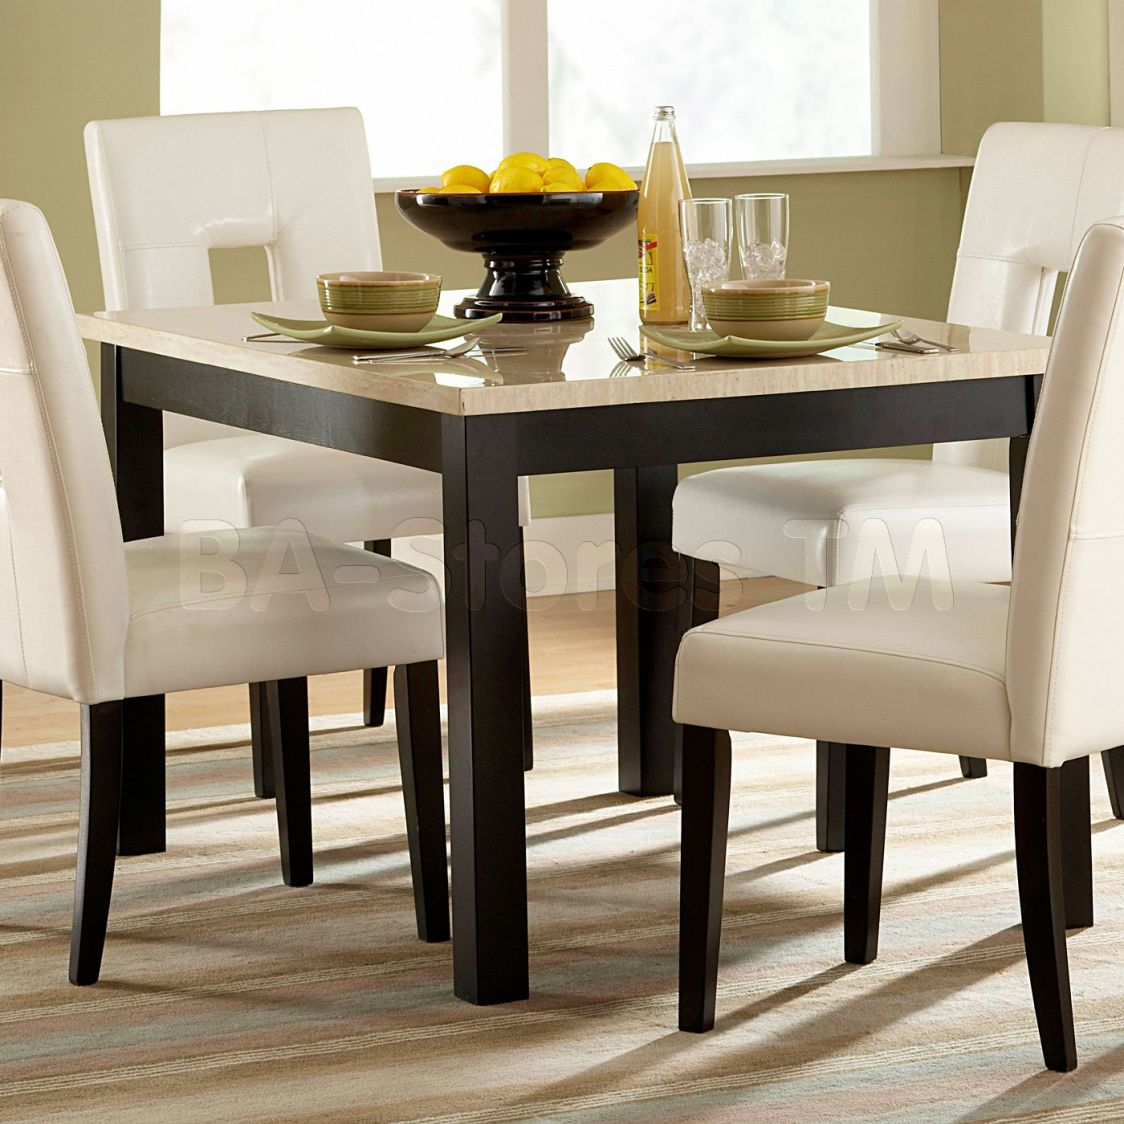 Square Dining Room Table For 4 Best Way To Paint Furniture Check More At Http 1pureedm Com Sq Modern Kitchen Tables Small Dining Room Set Dining Room Small